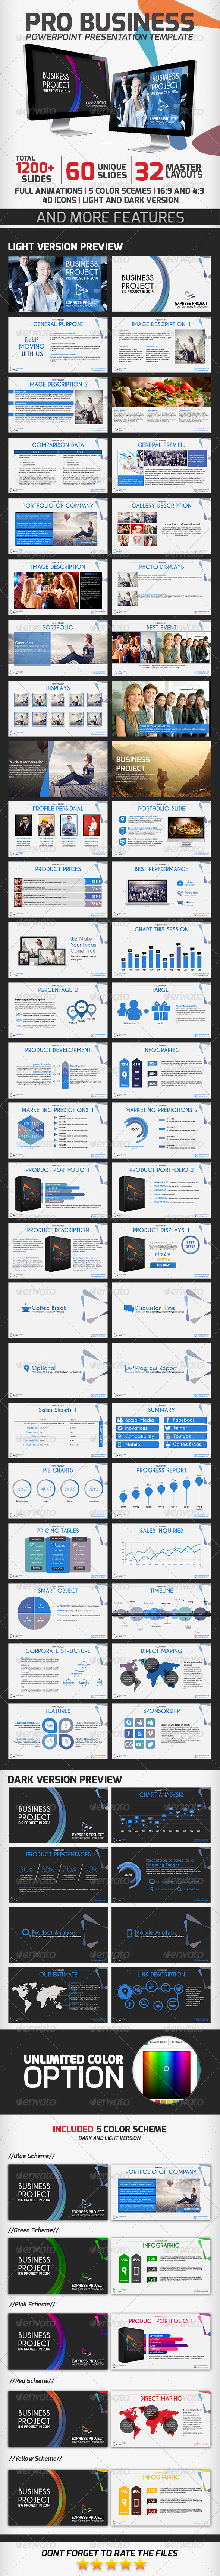 Pro Business PowerPoint Presentation Template - Business PowerPoint Templates